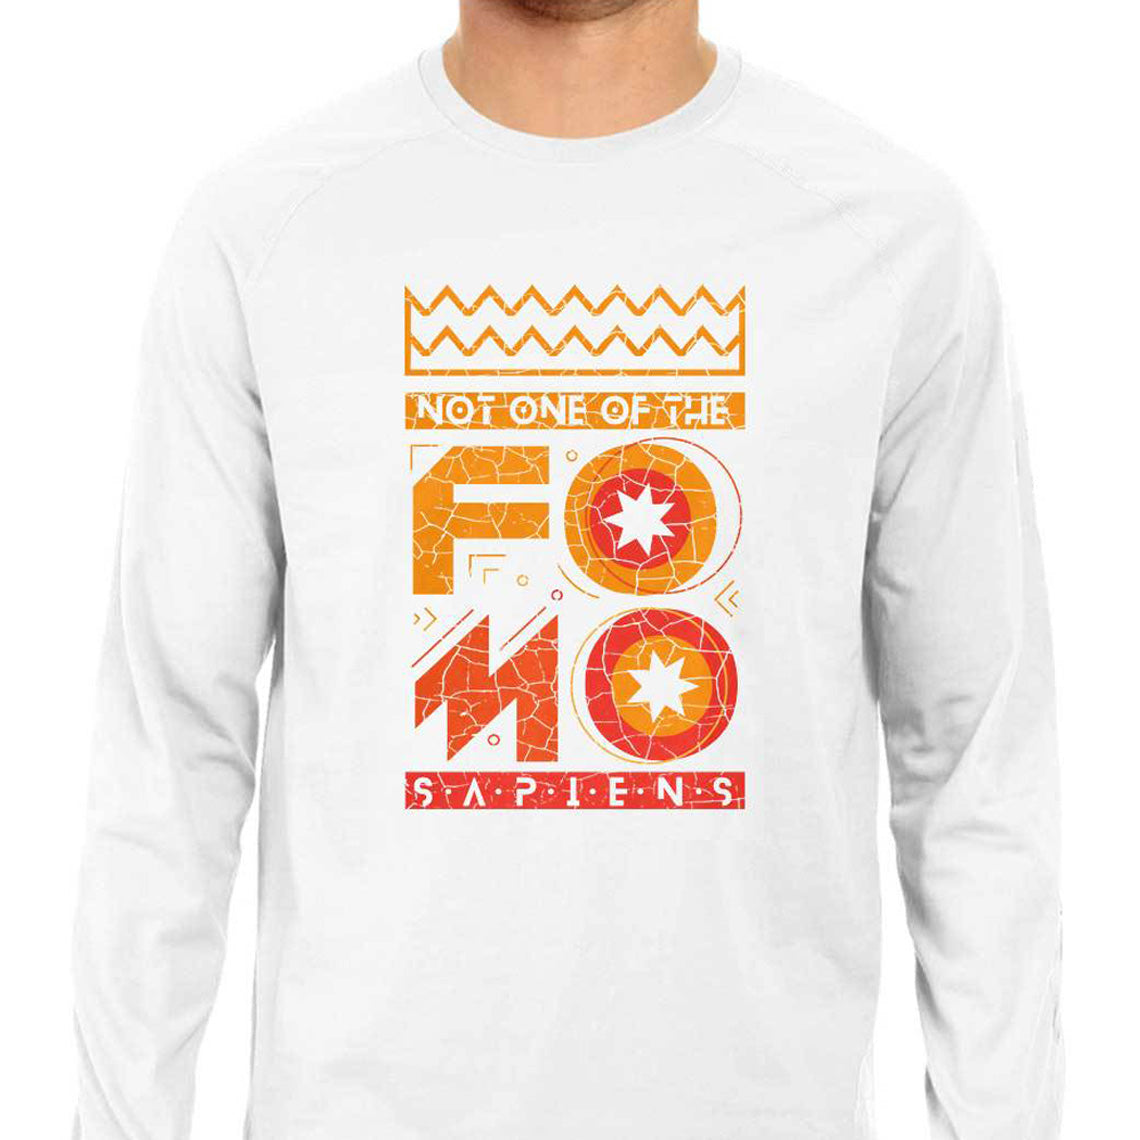 Not One Of The Fomo Sapiens! Men's Long Sleeve T-shirt